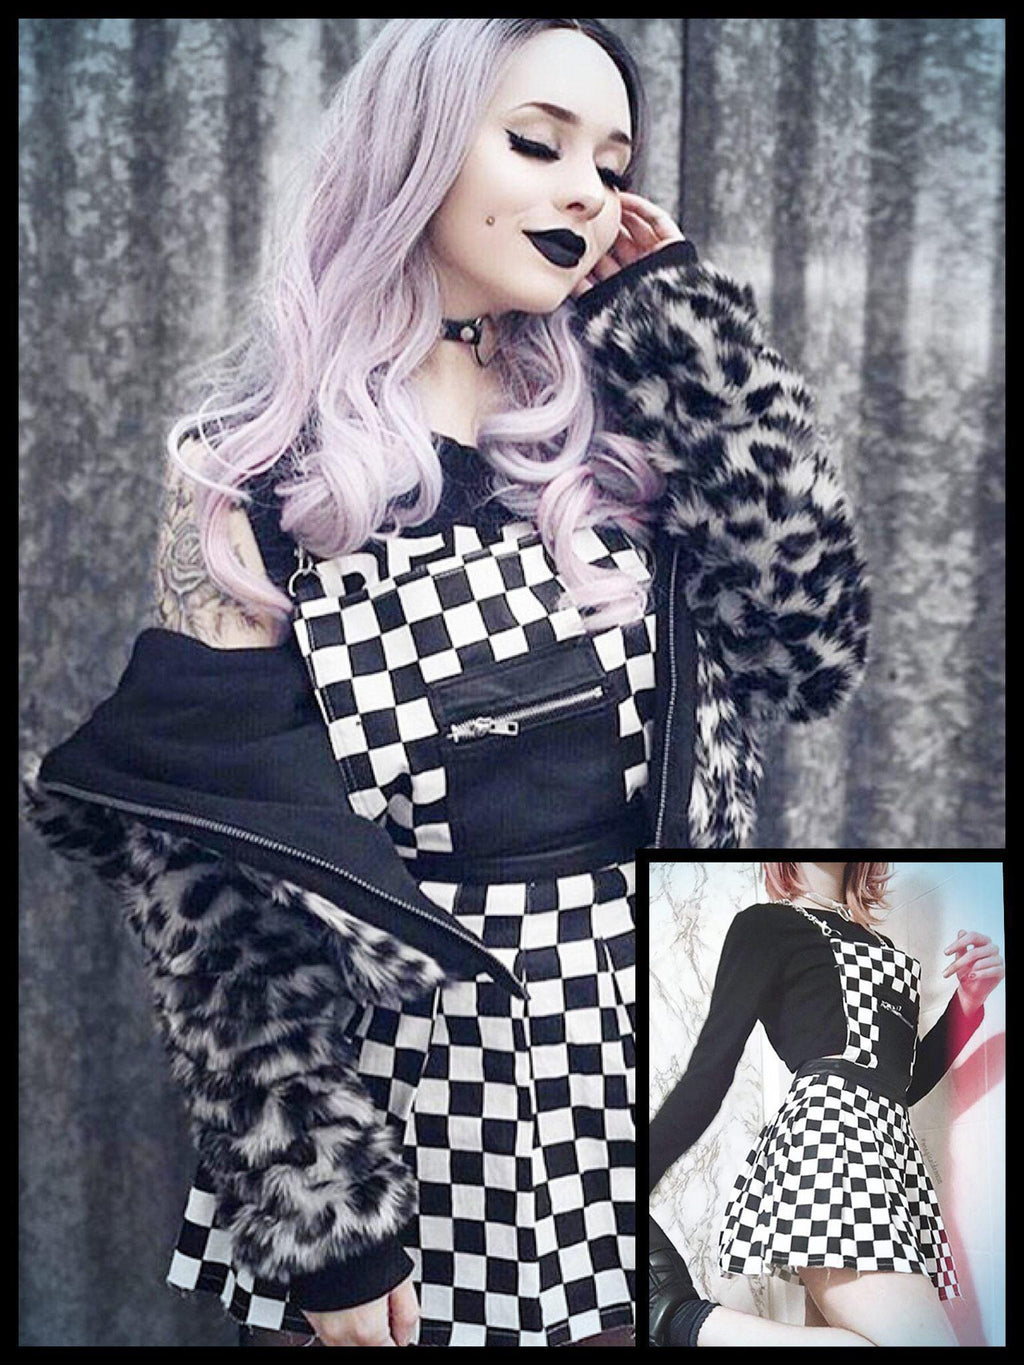 BlissGirl - Black and White Checkered Romper - S - Harajuku - Kawaii - Alternative - Fashion